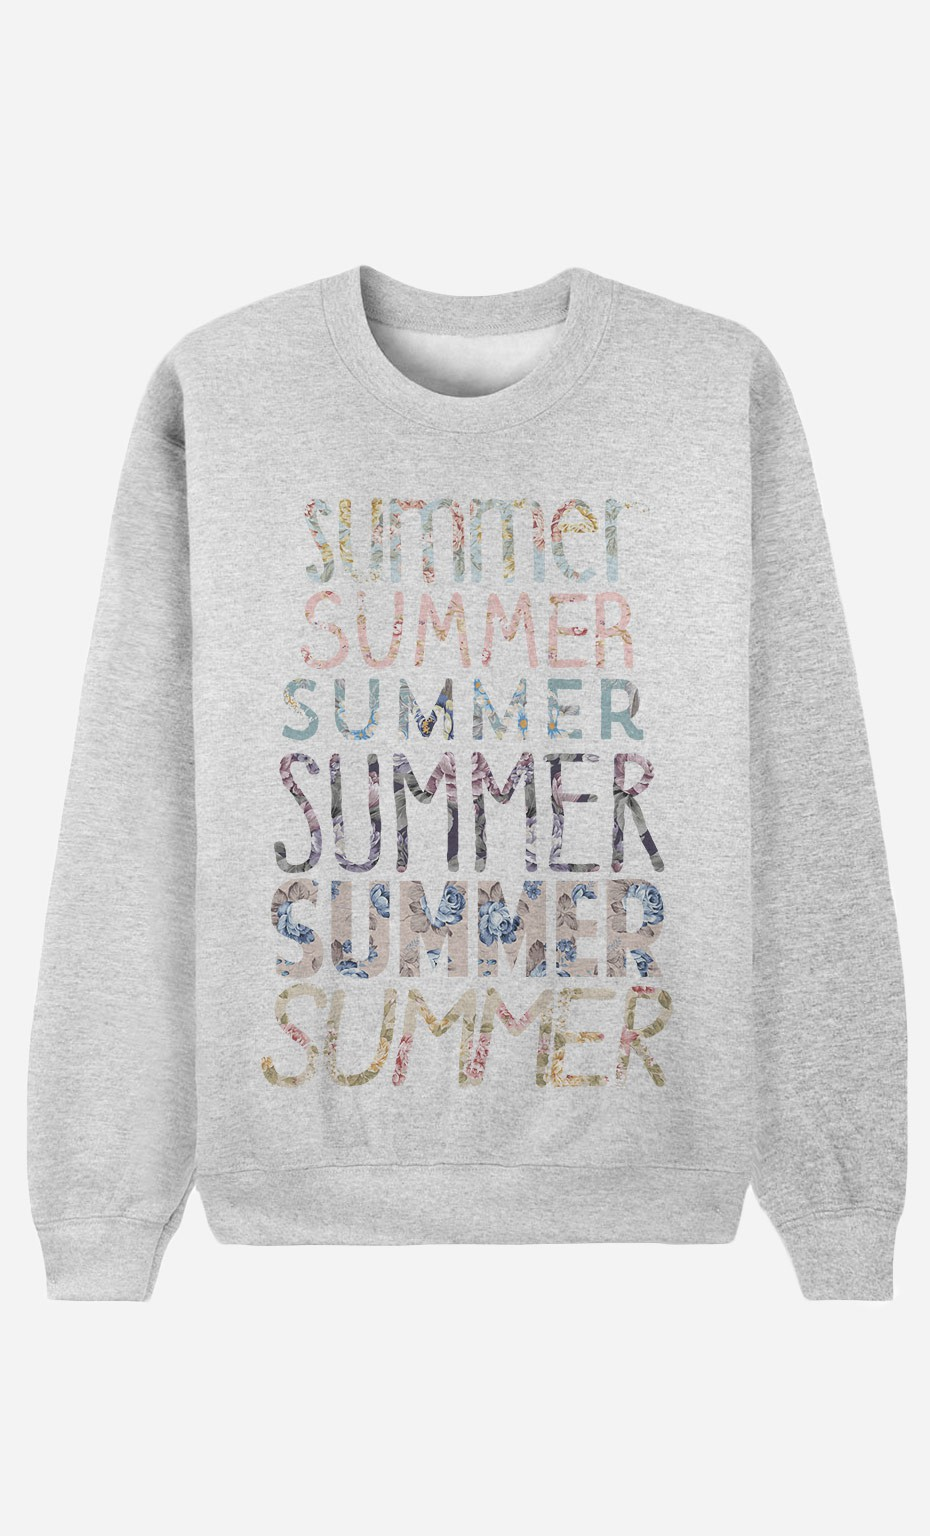 Sweat Summer